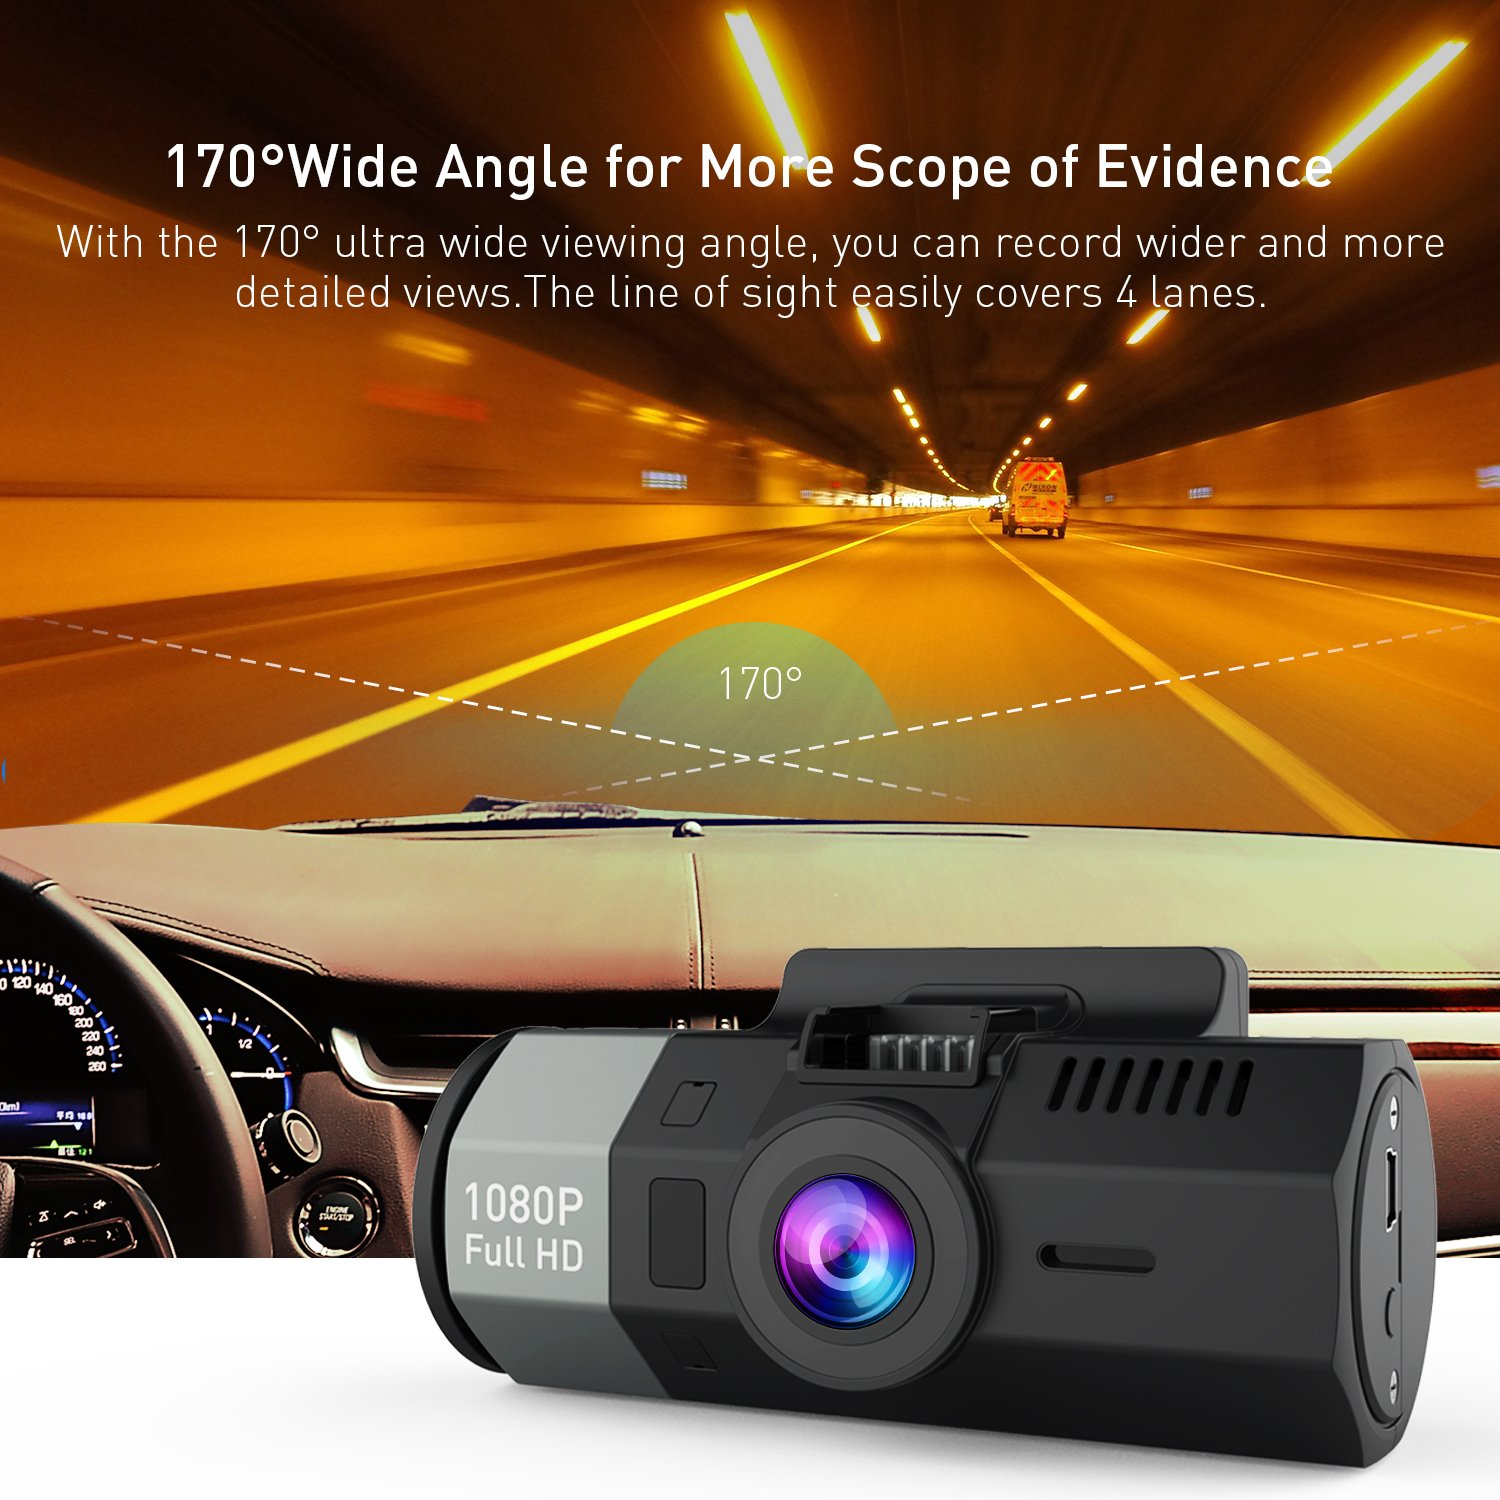 Crosstour Dash Cam 1080P FHD DVR Car Dashboard Camera Video Recorder for Cars 170° Wide Angle WDR with 2 inch LCD, Night Vision,Motion Detection, Loop Recording and G-Sensor by Crosstour (Image #5)